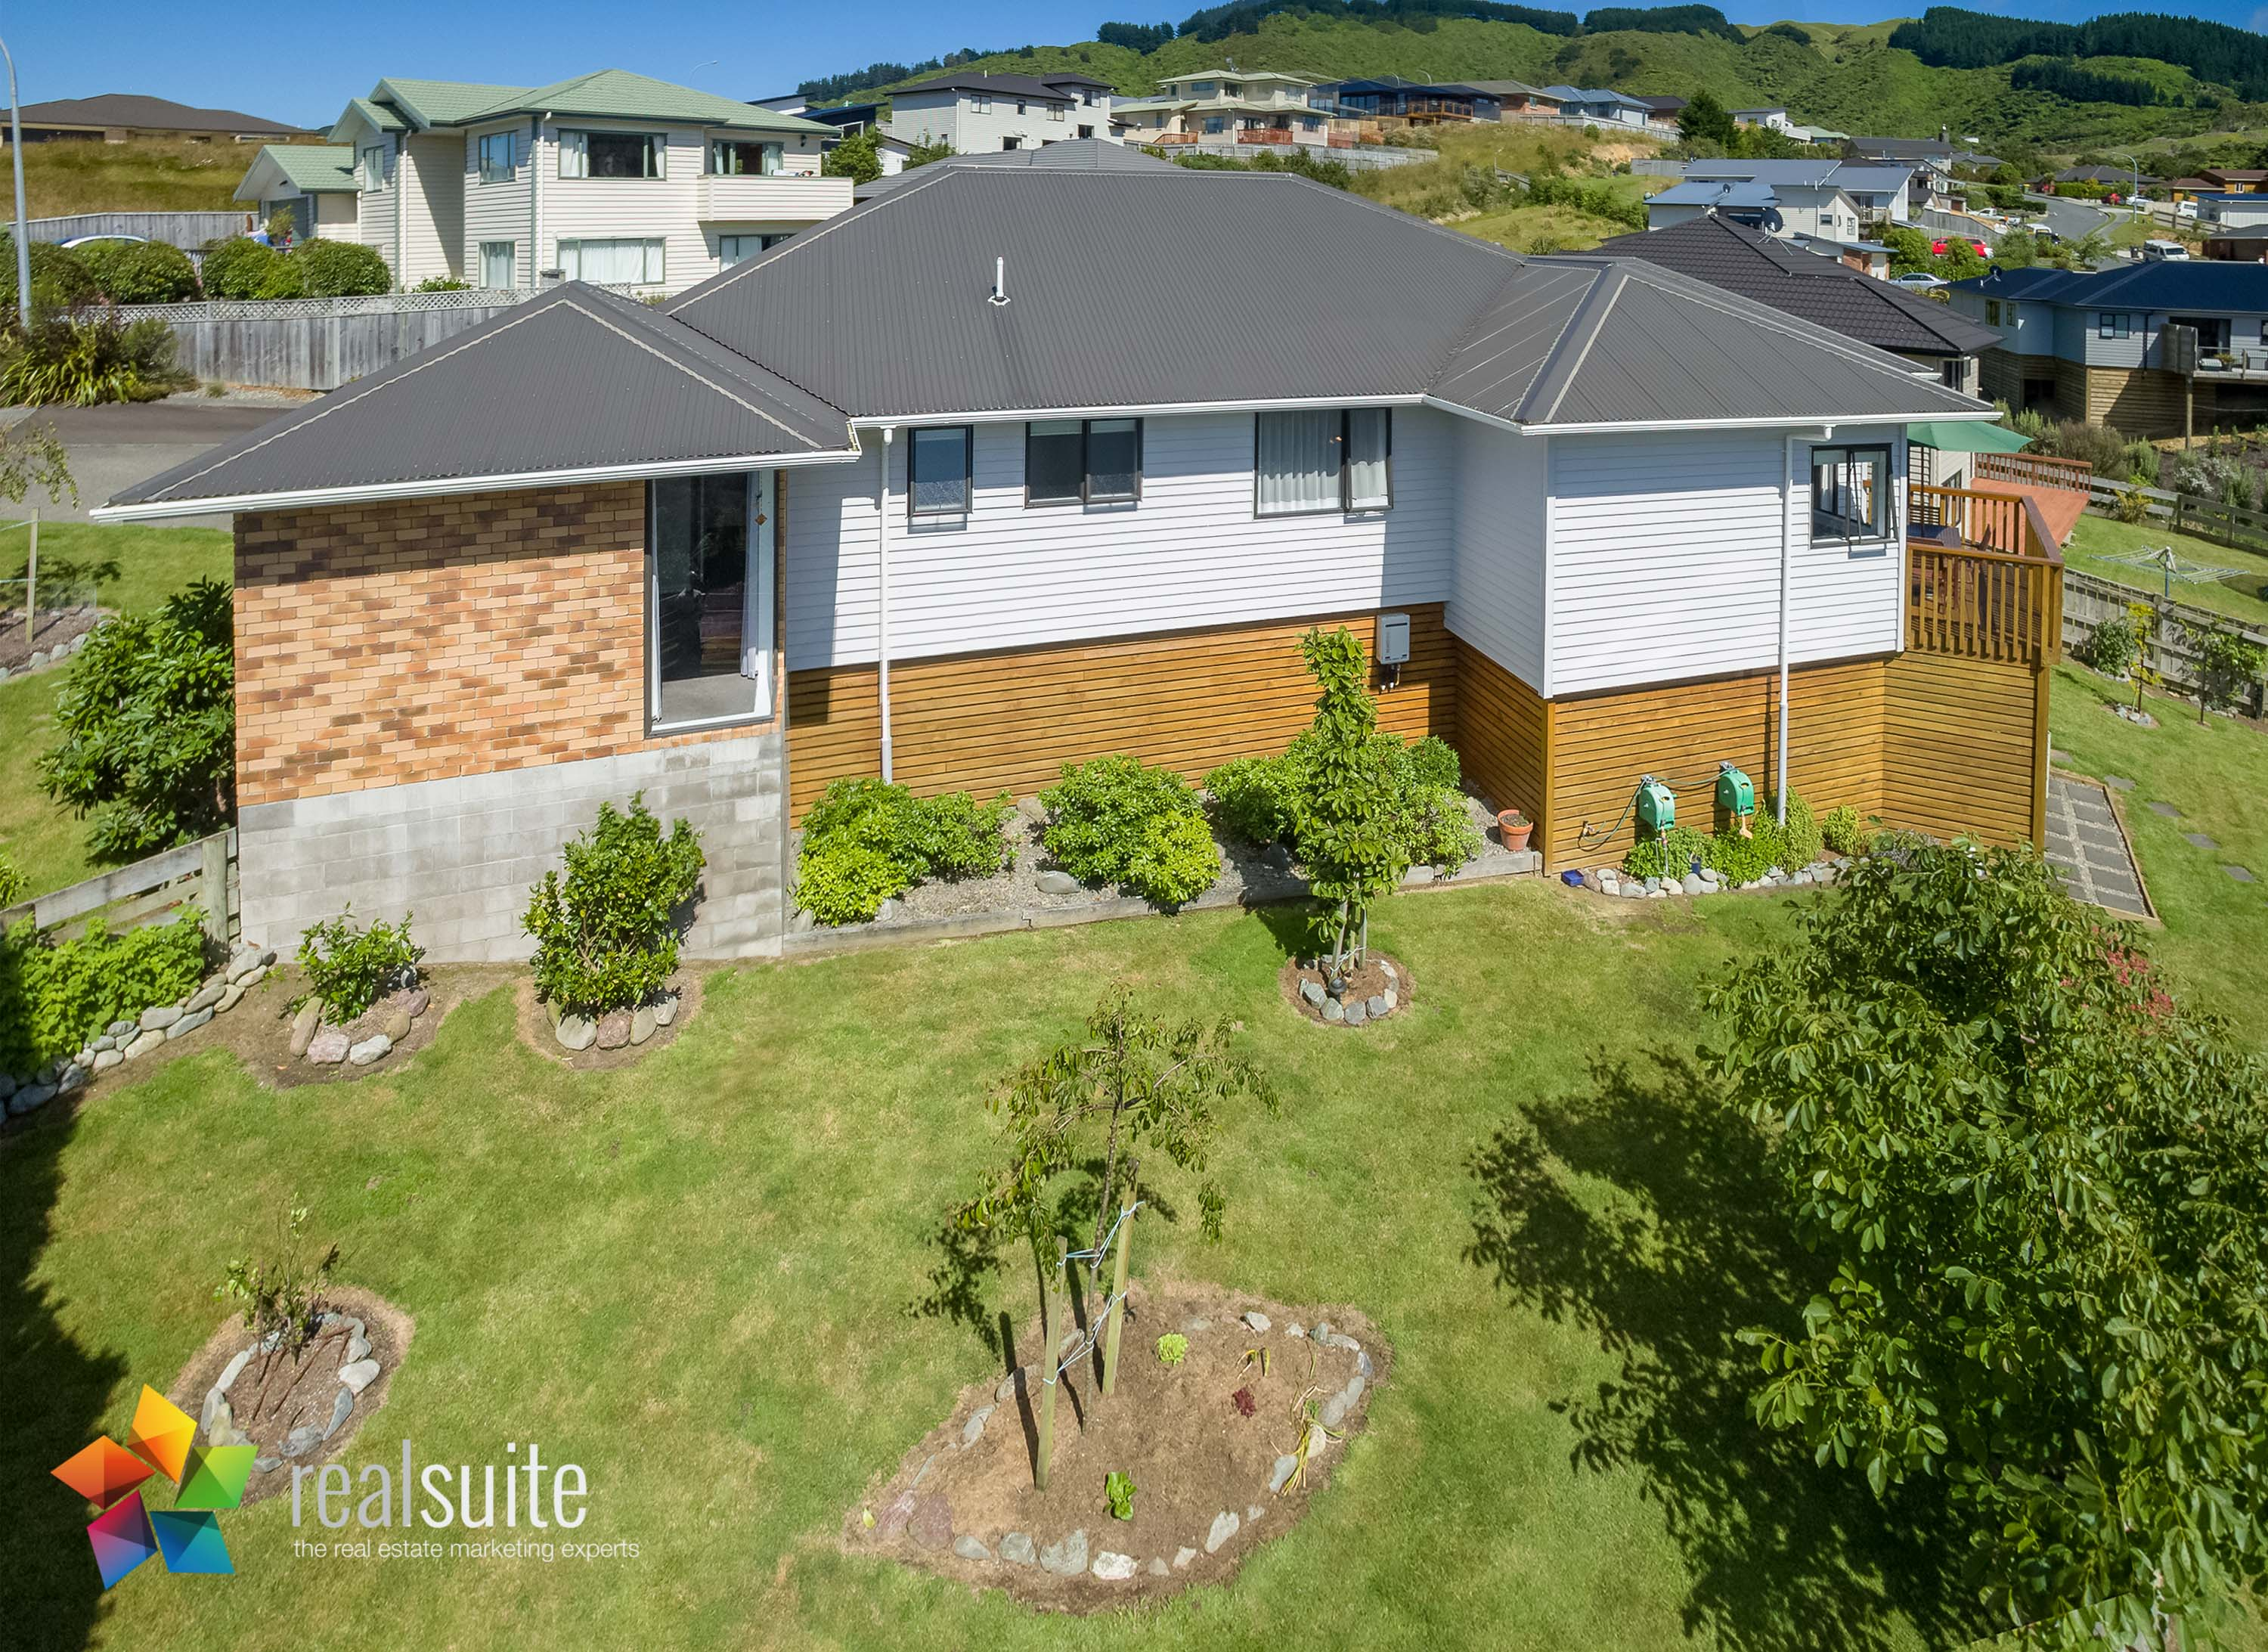 9 McEwen Crescent, Riverstone Terraces Aerial 0451